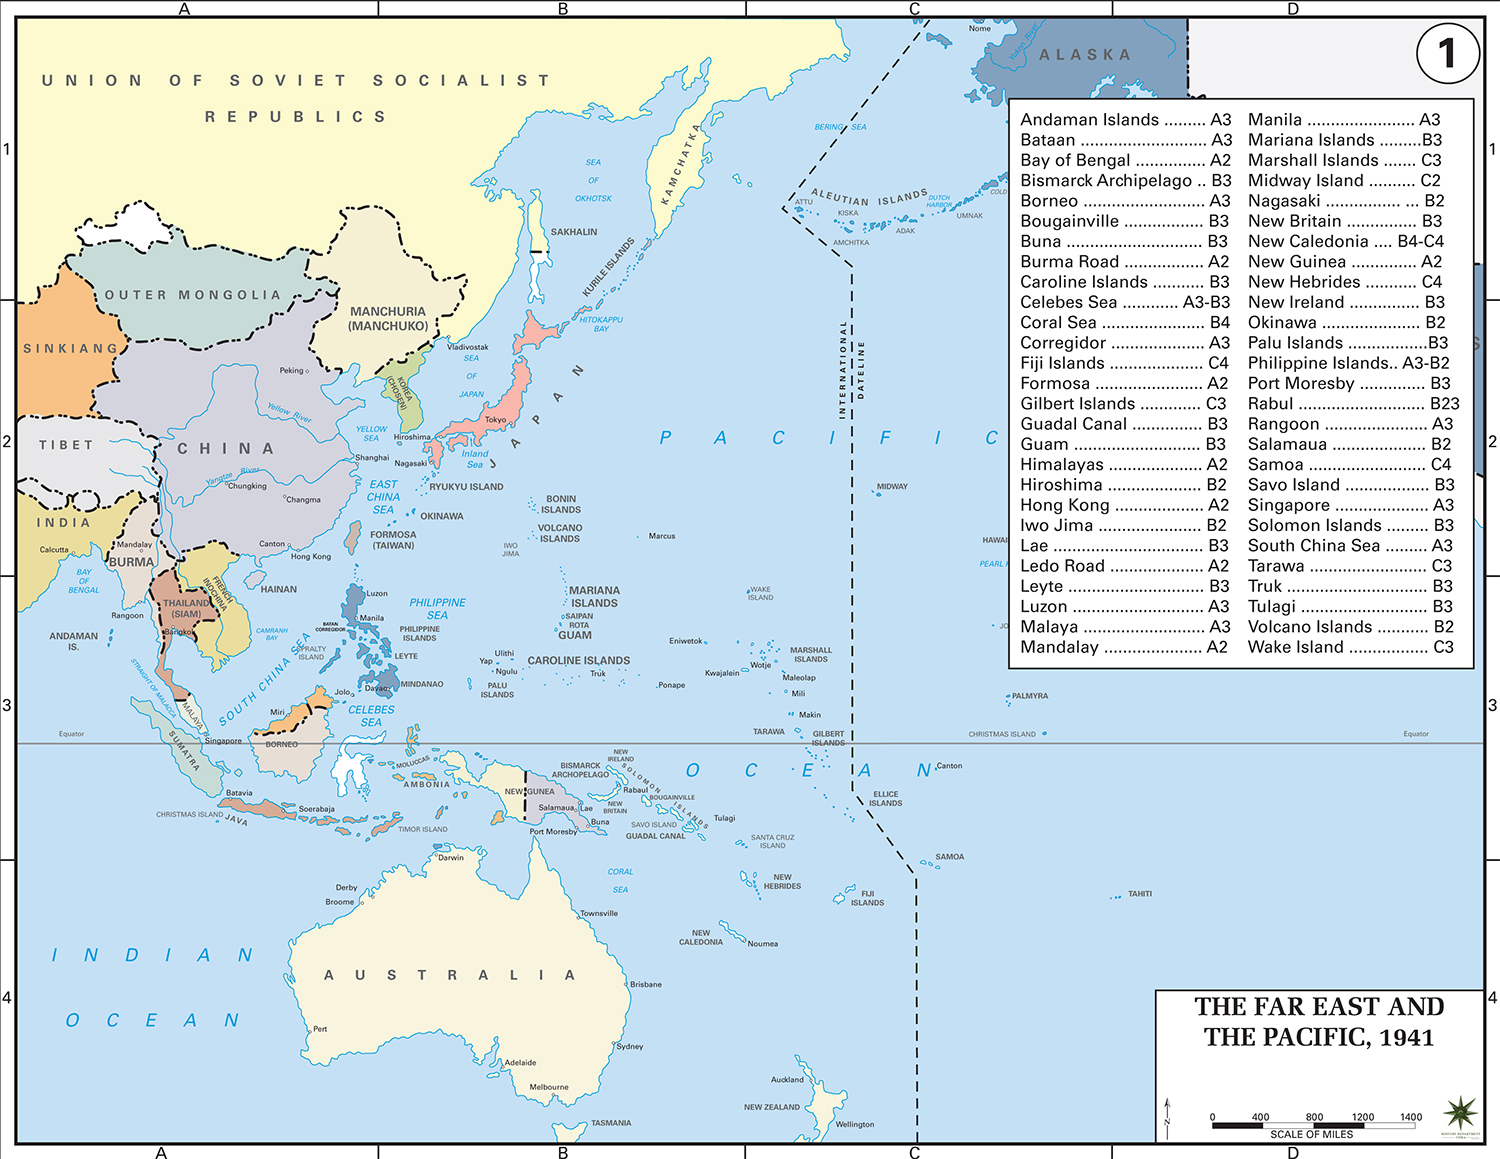 Two Maps of the Far East and the Pacific 1941